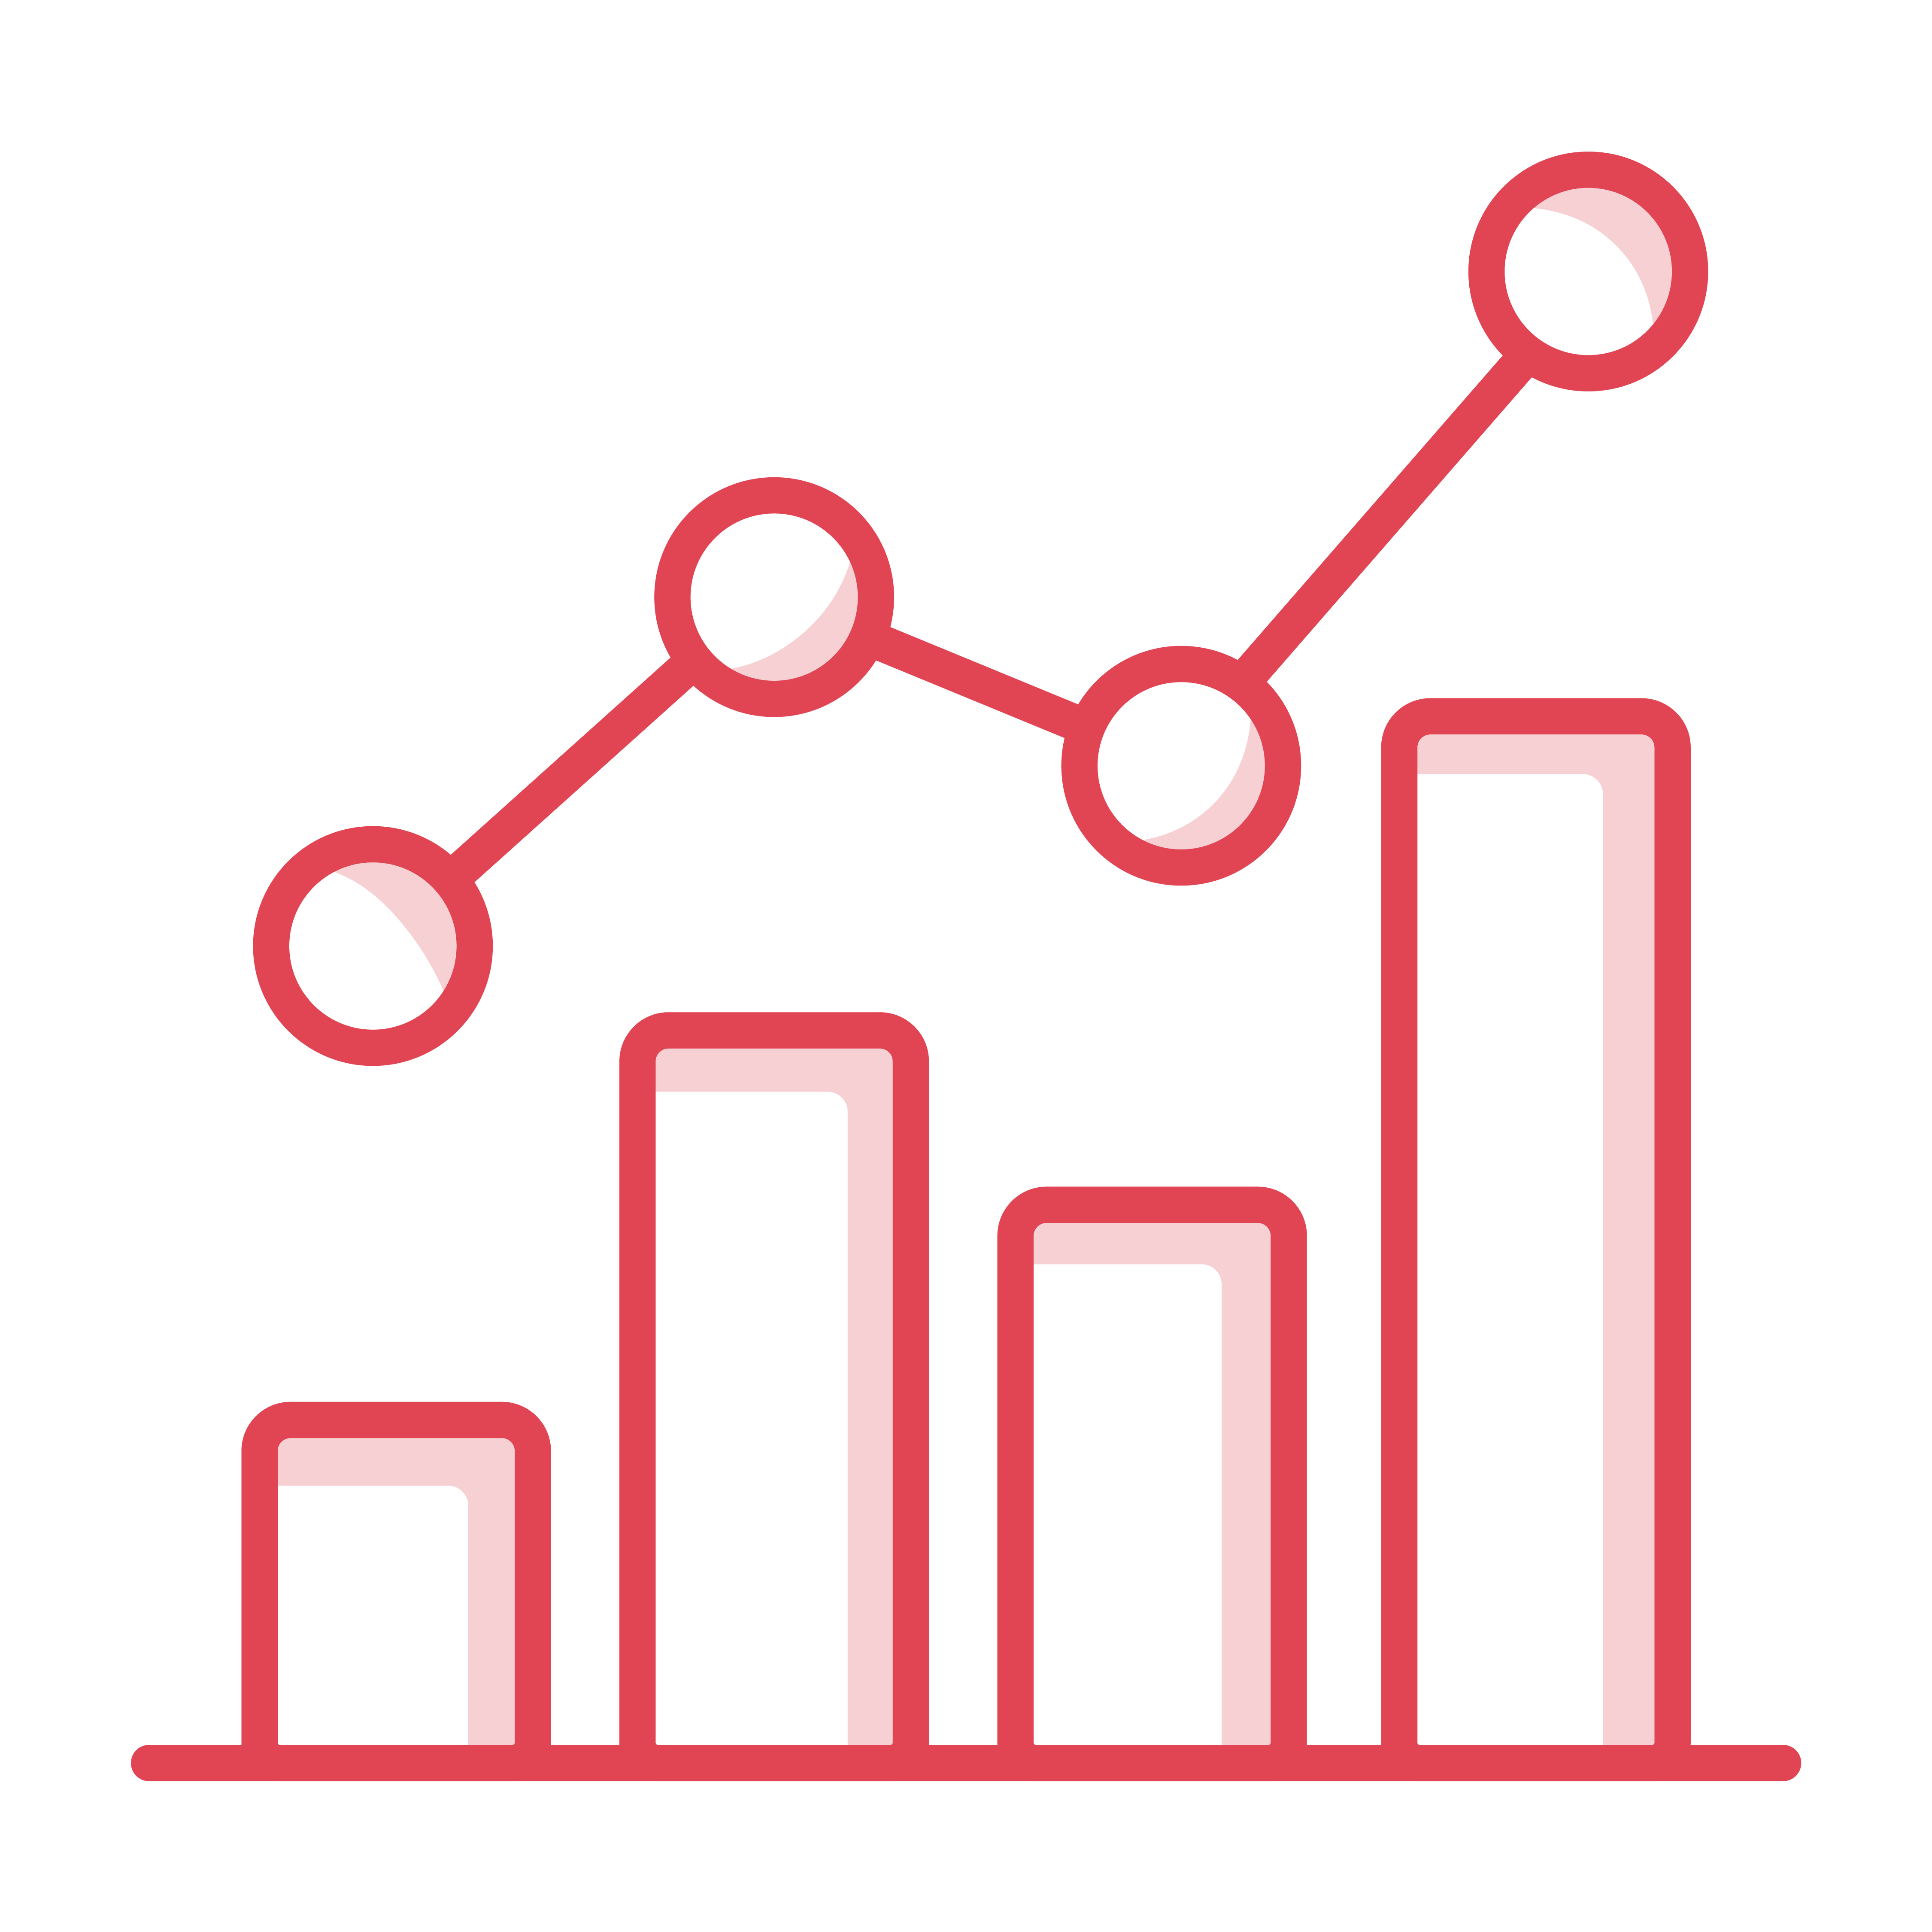 Icon of an analytical bar chart with line